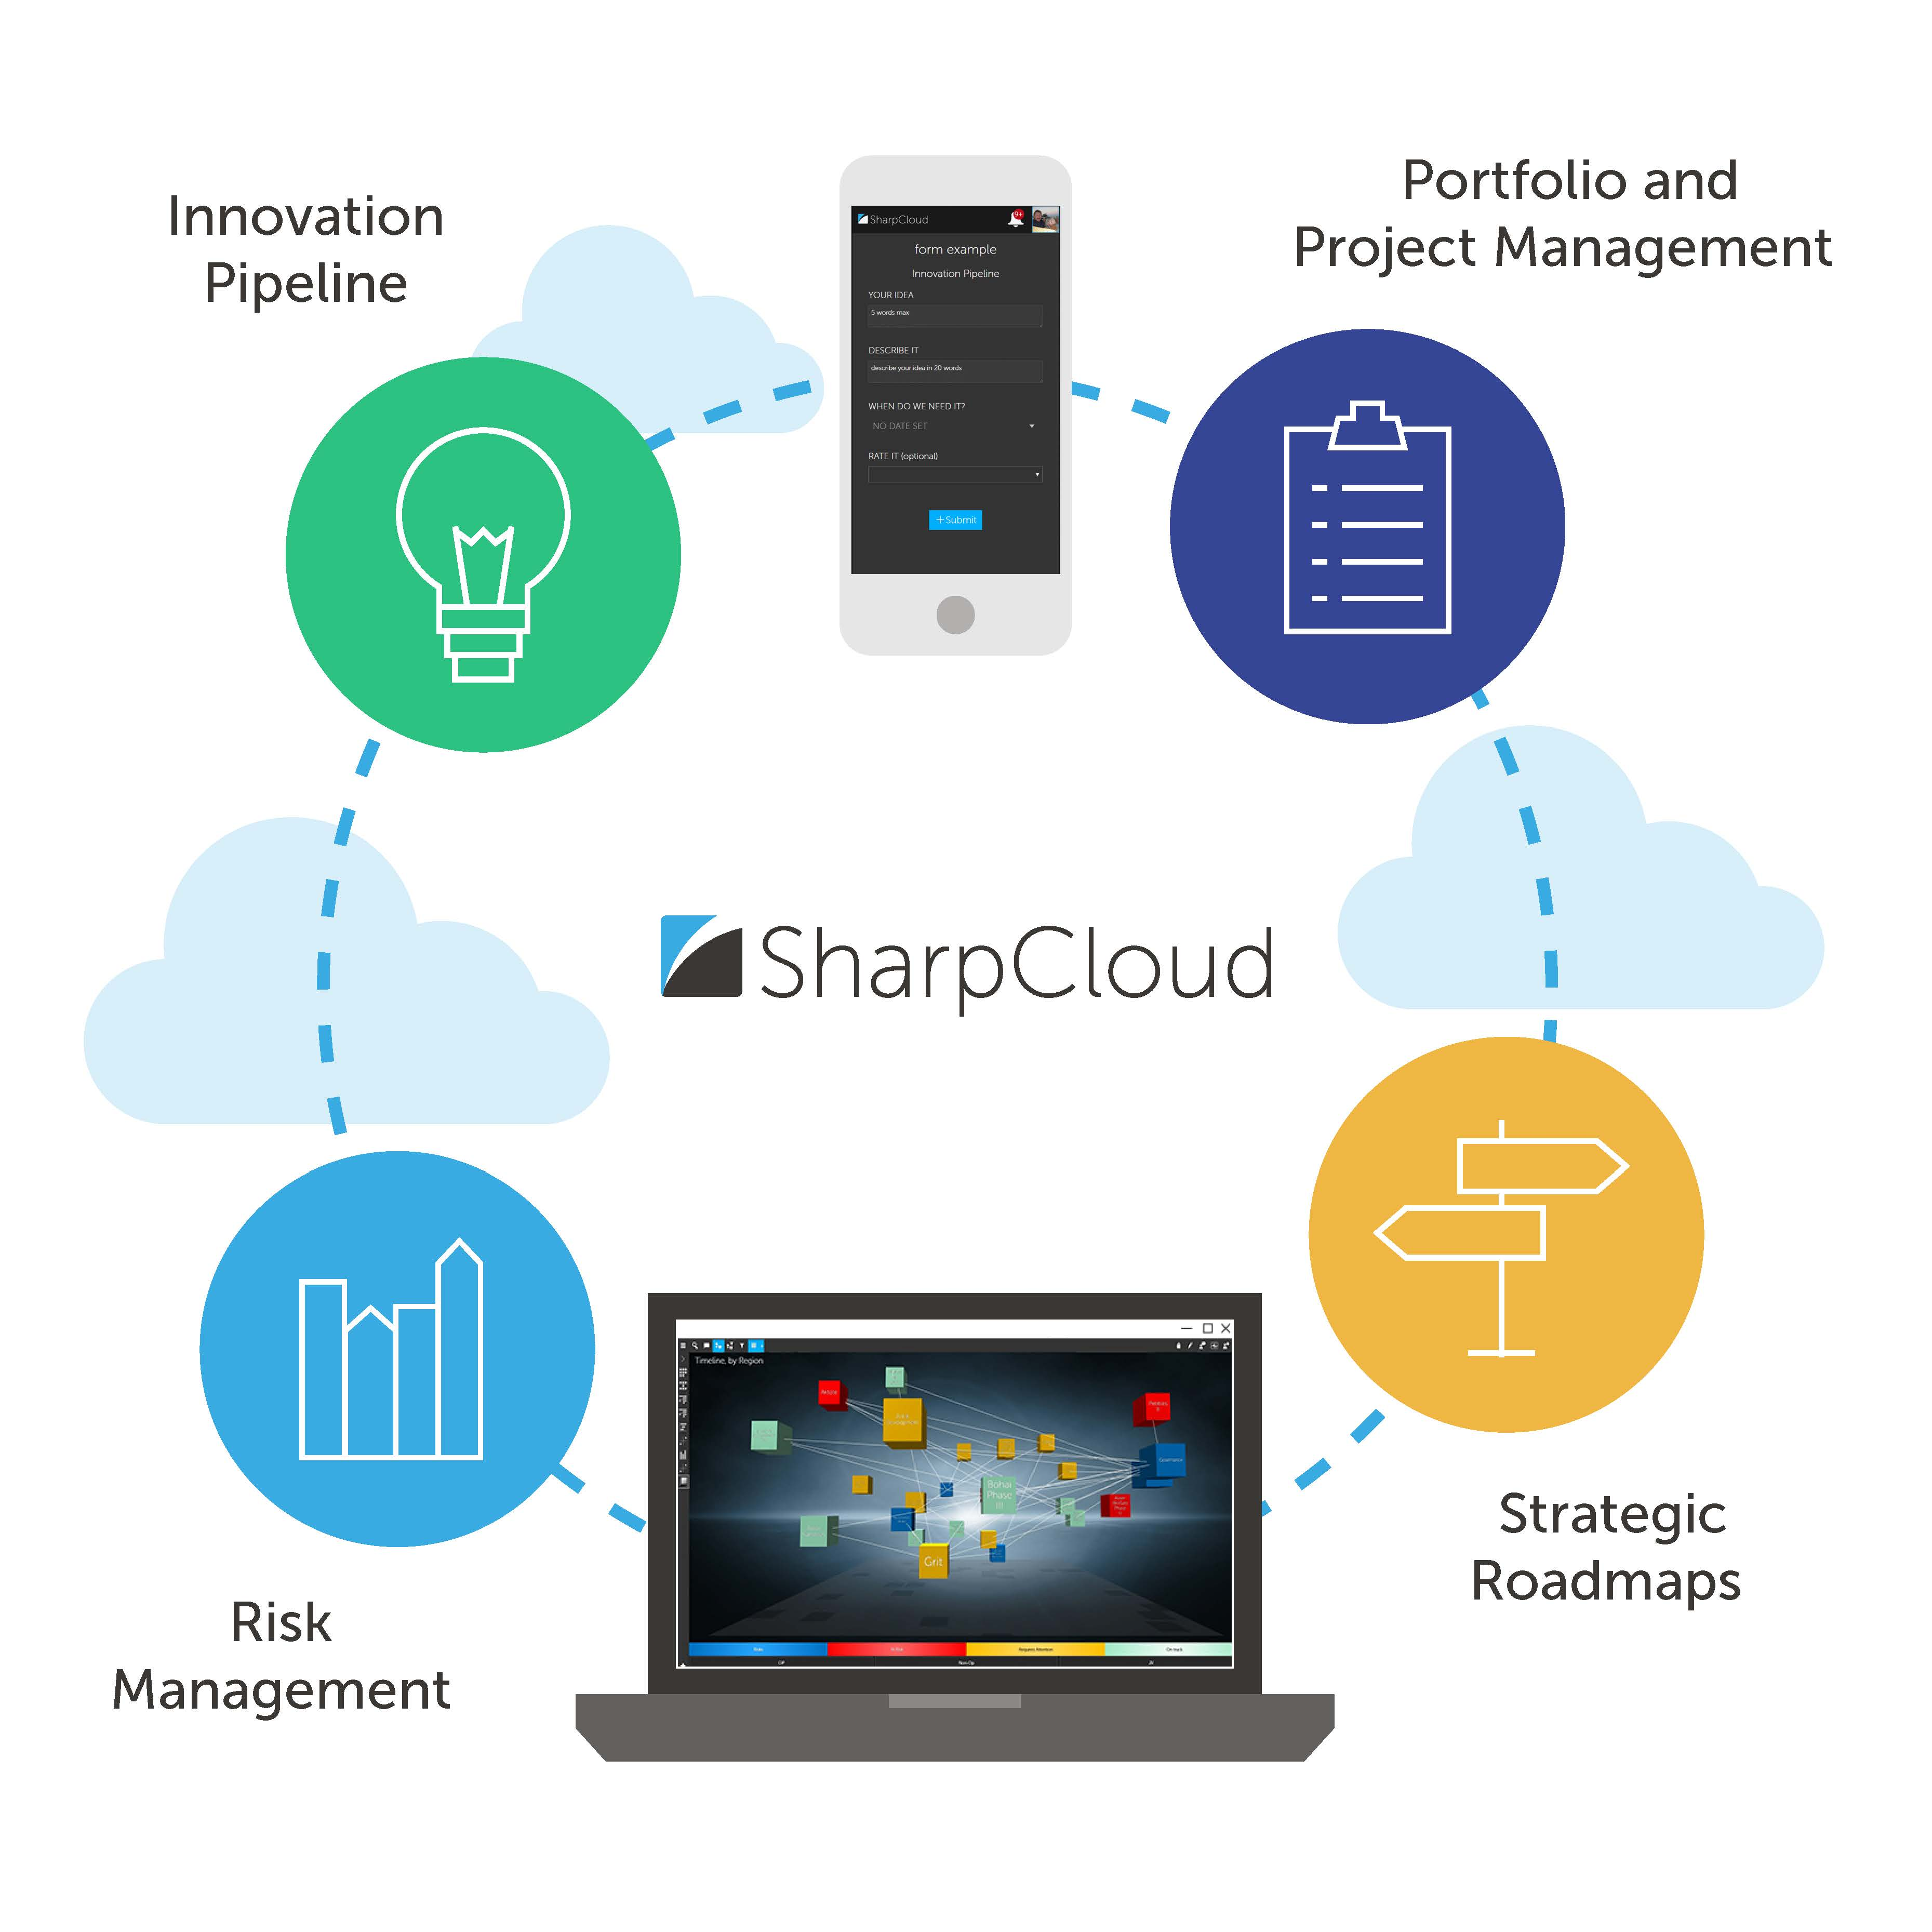 Sharpcloud Enterprise Graphic draft 5.2 (2)